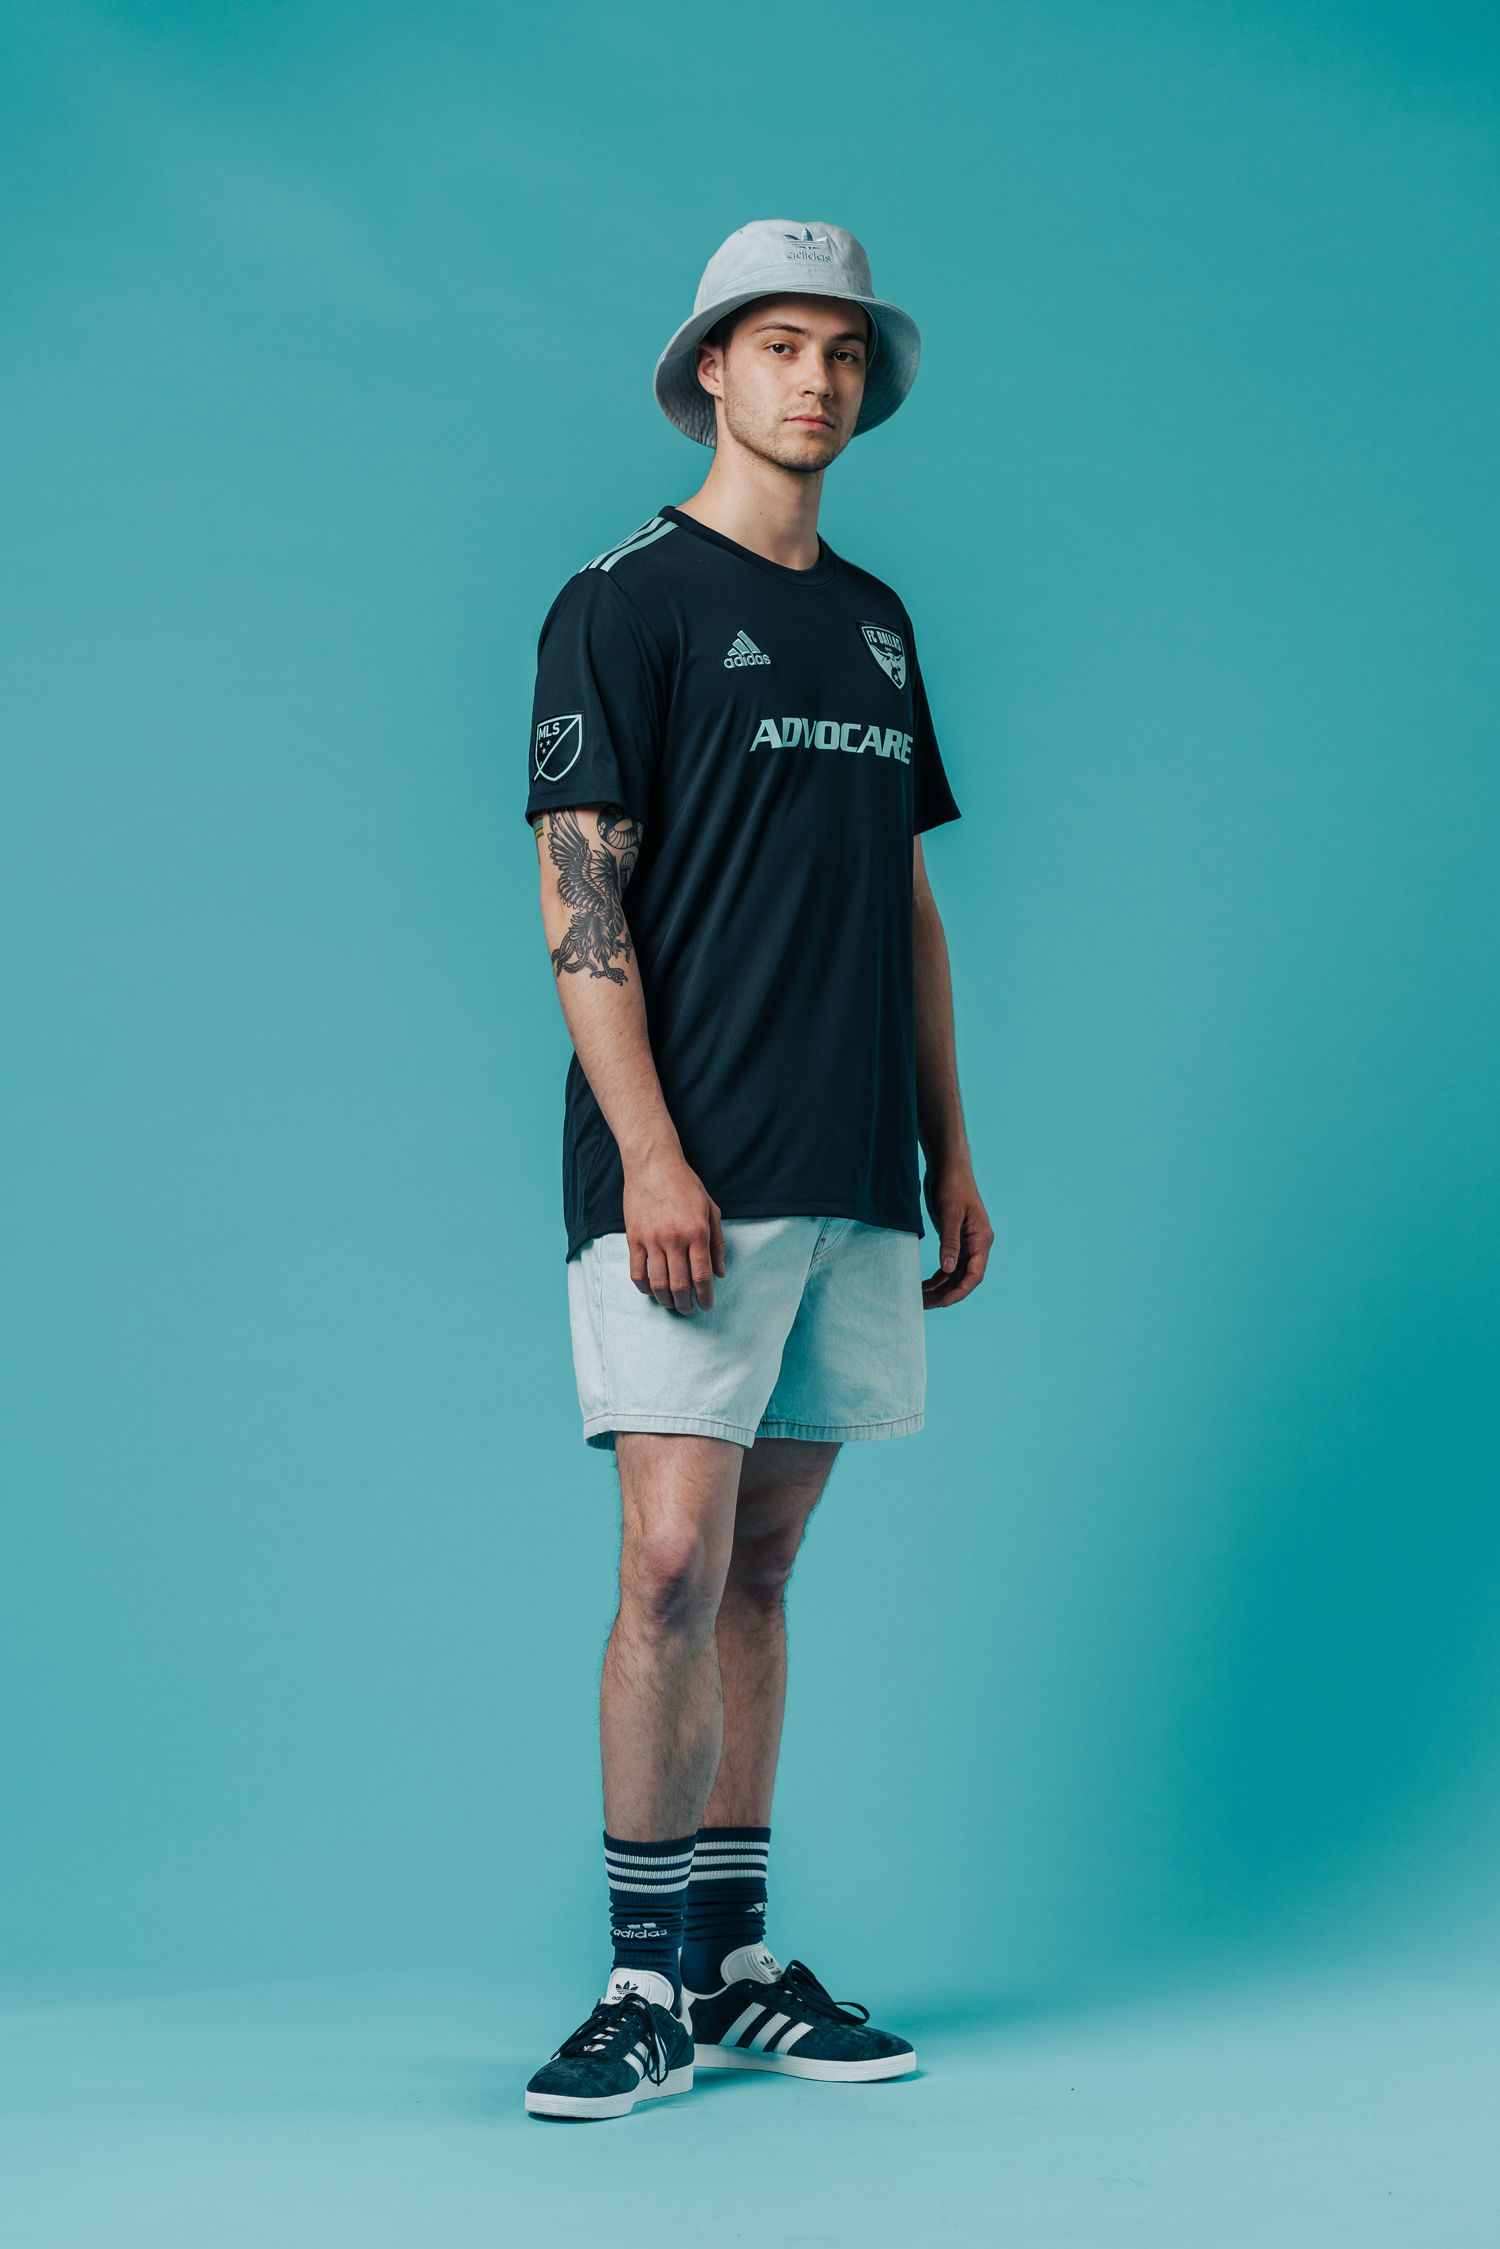 The 2019 FC Dallas adidas Parley jersey with socks and shorts. Actual game short not pictured but potentially could be the same color or continue the dark gray.